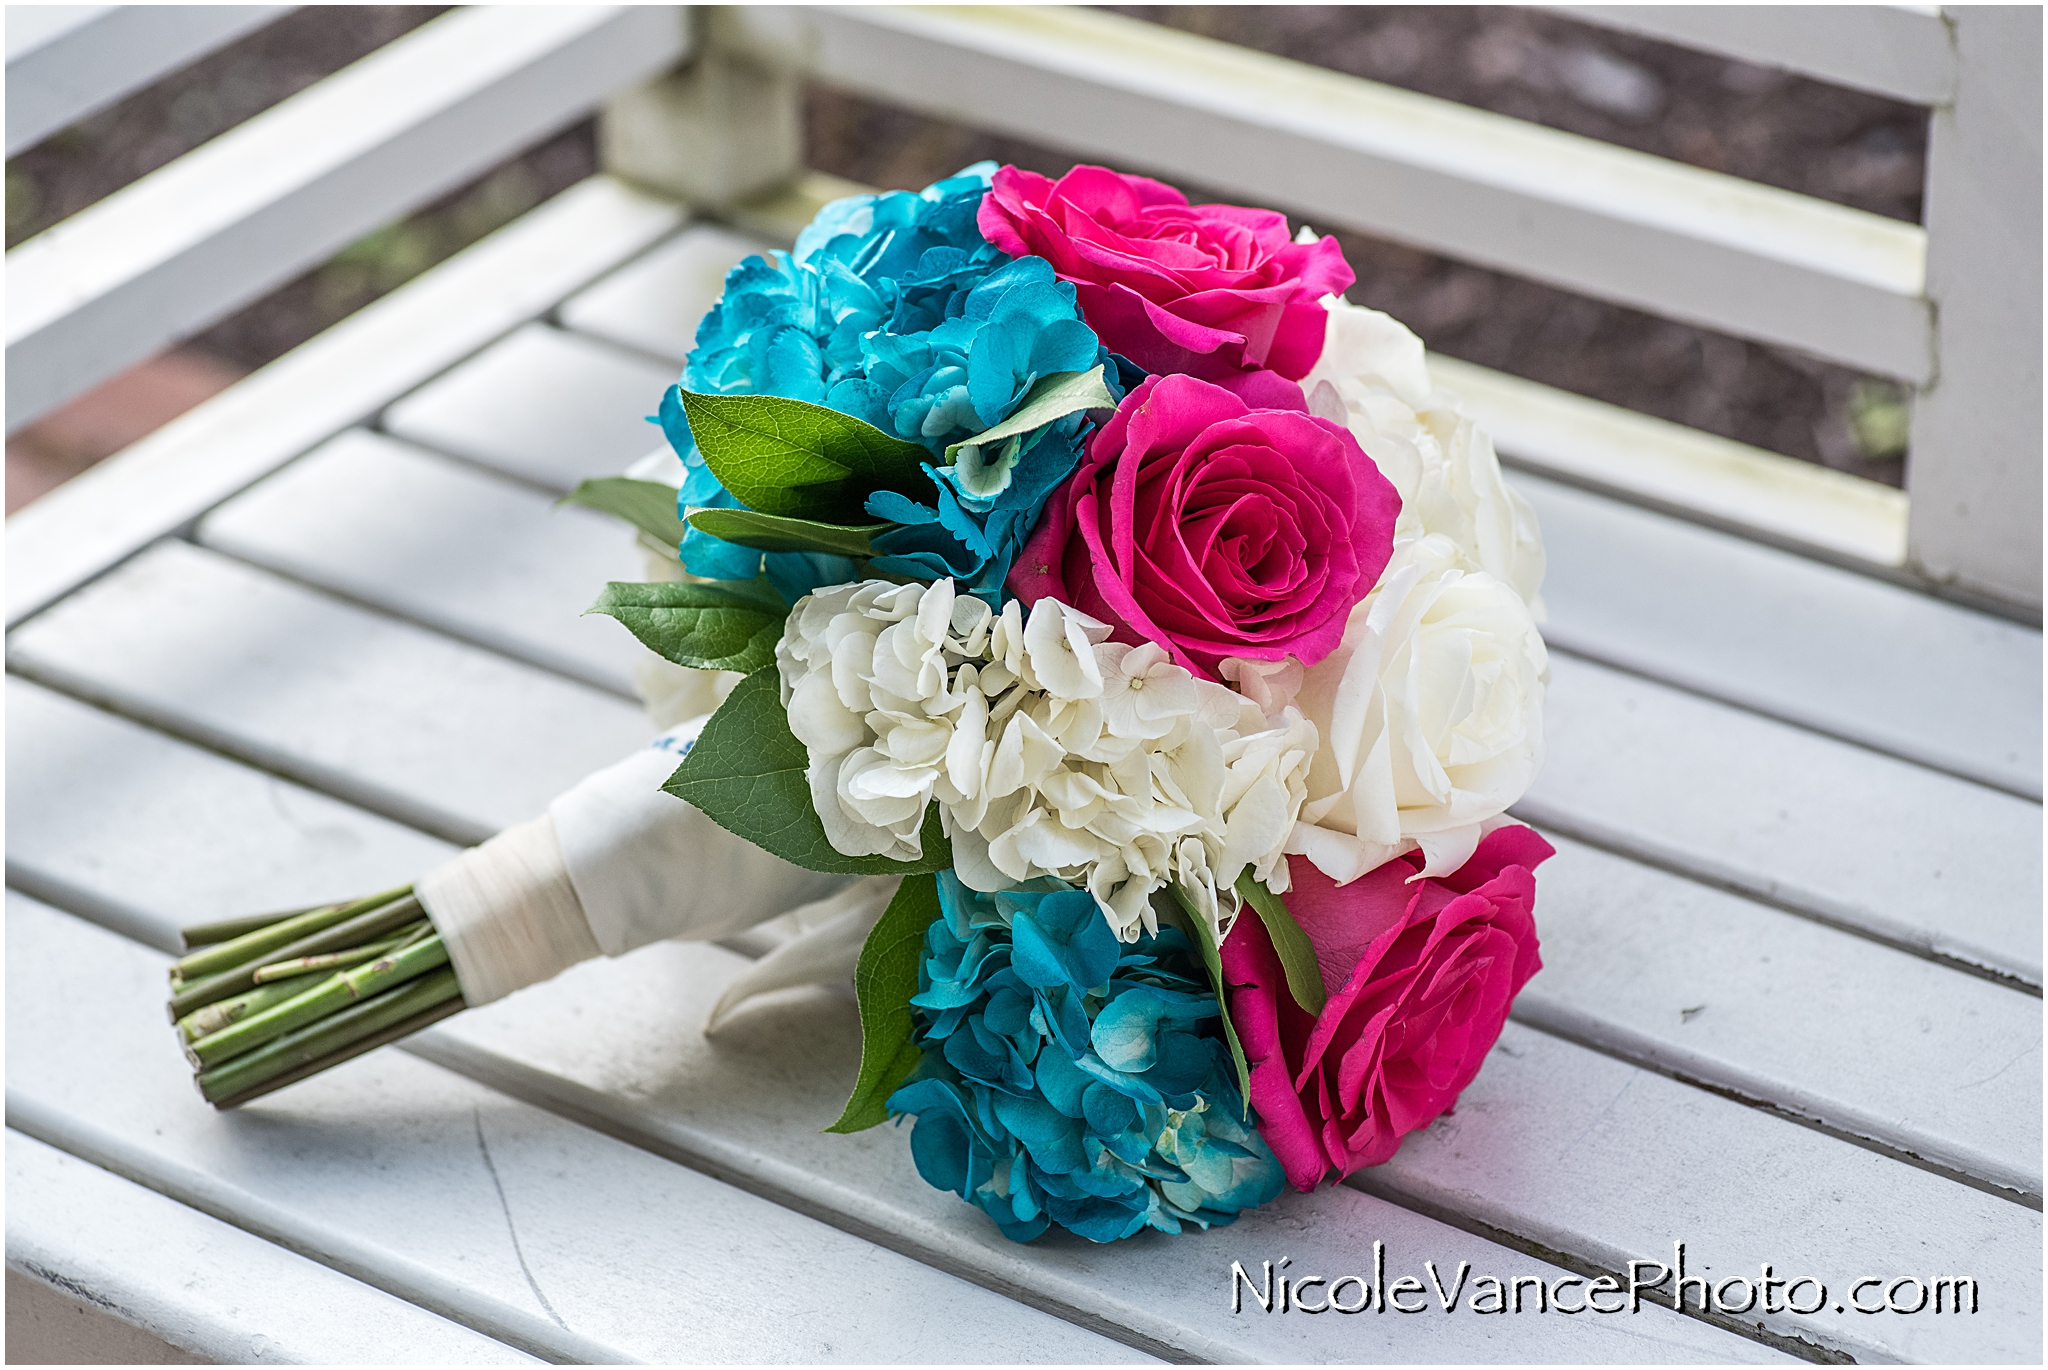 This bridal bouquet was designed by Flowers by Zoie.